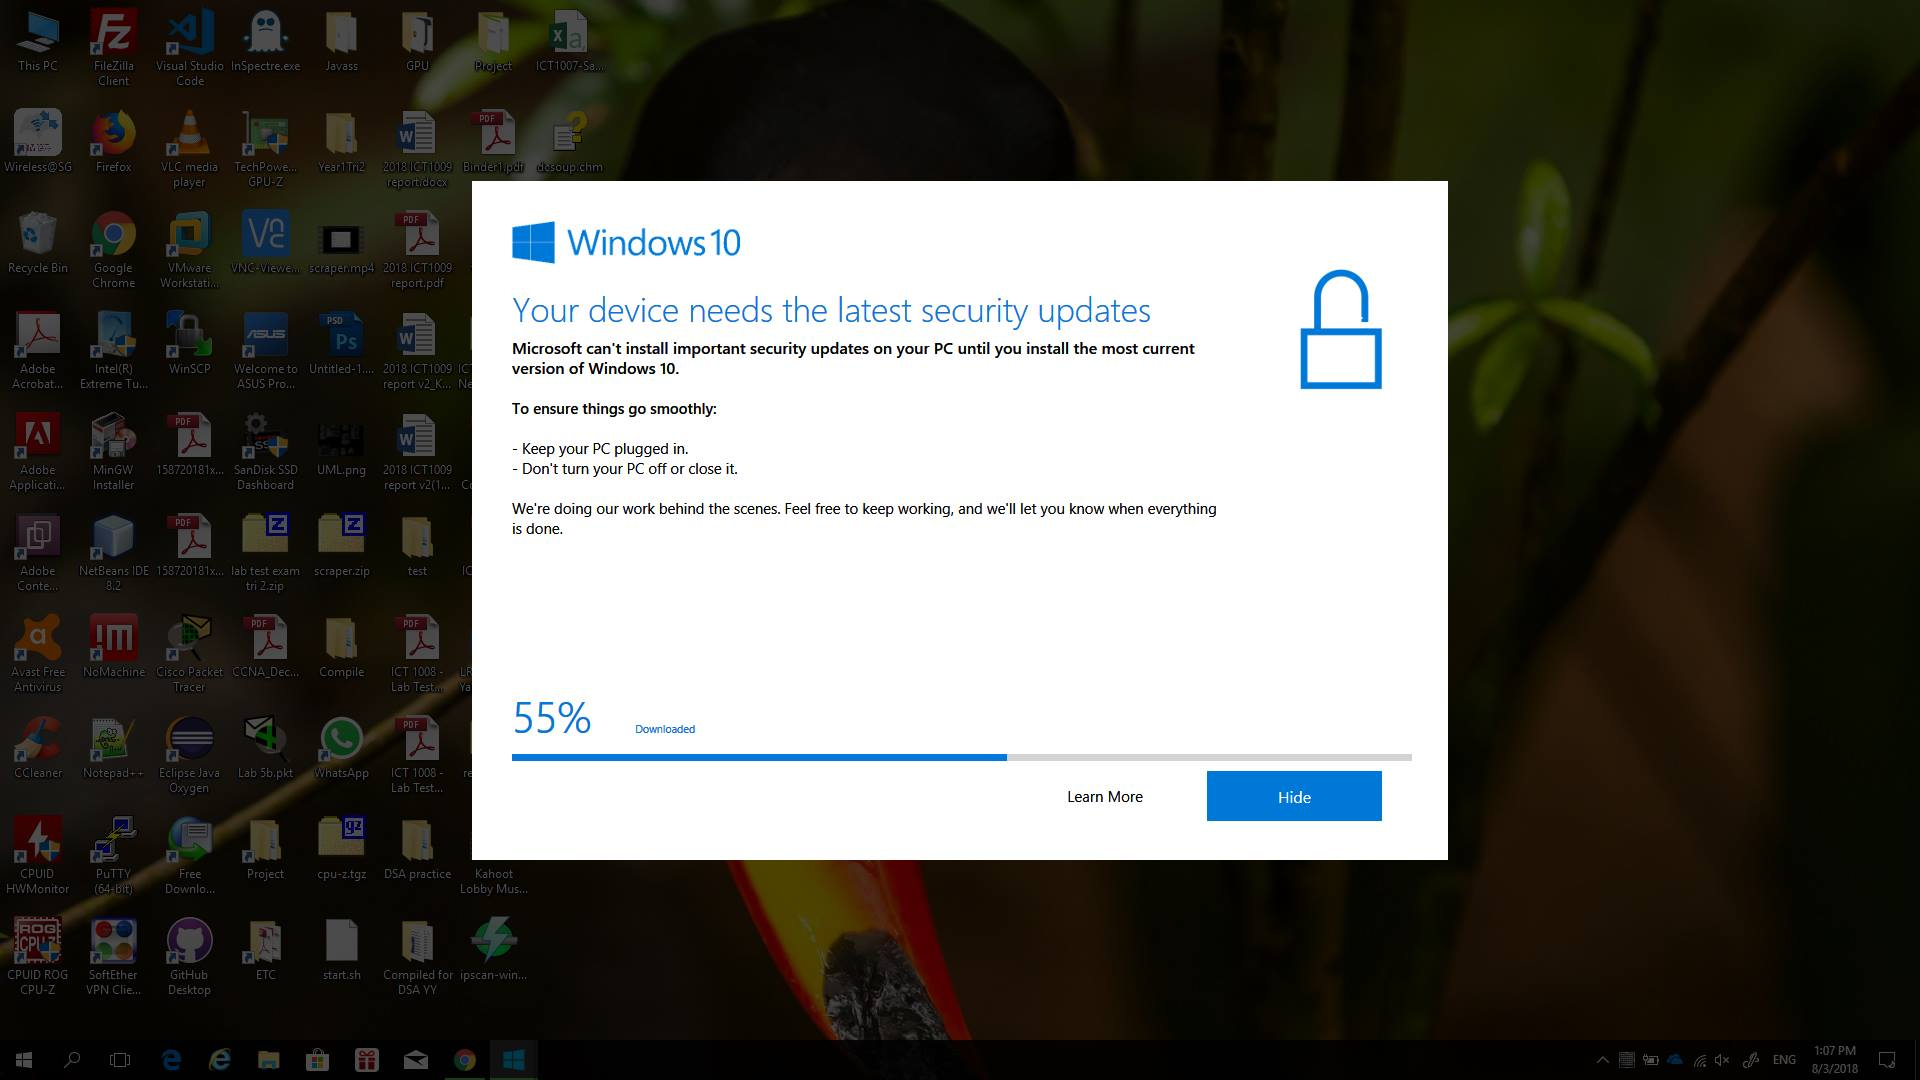 Windows 10 - 1703 forced upgraded to 1709 and got corrupted during